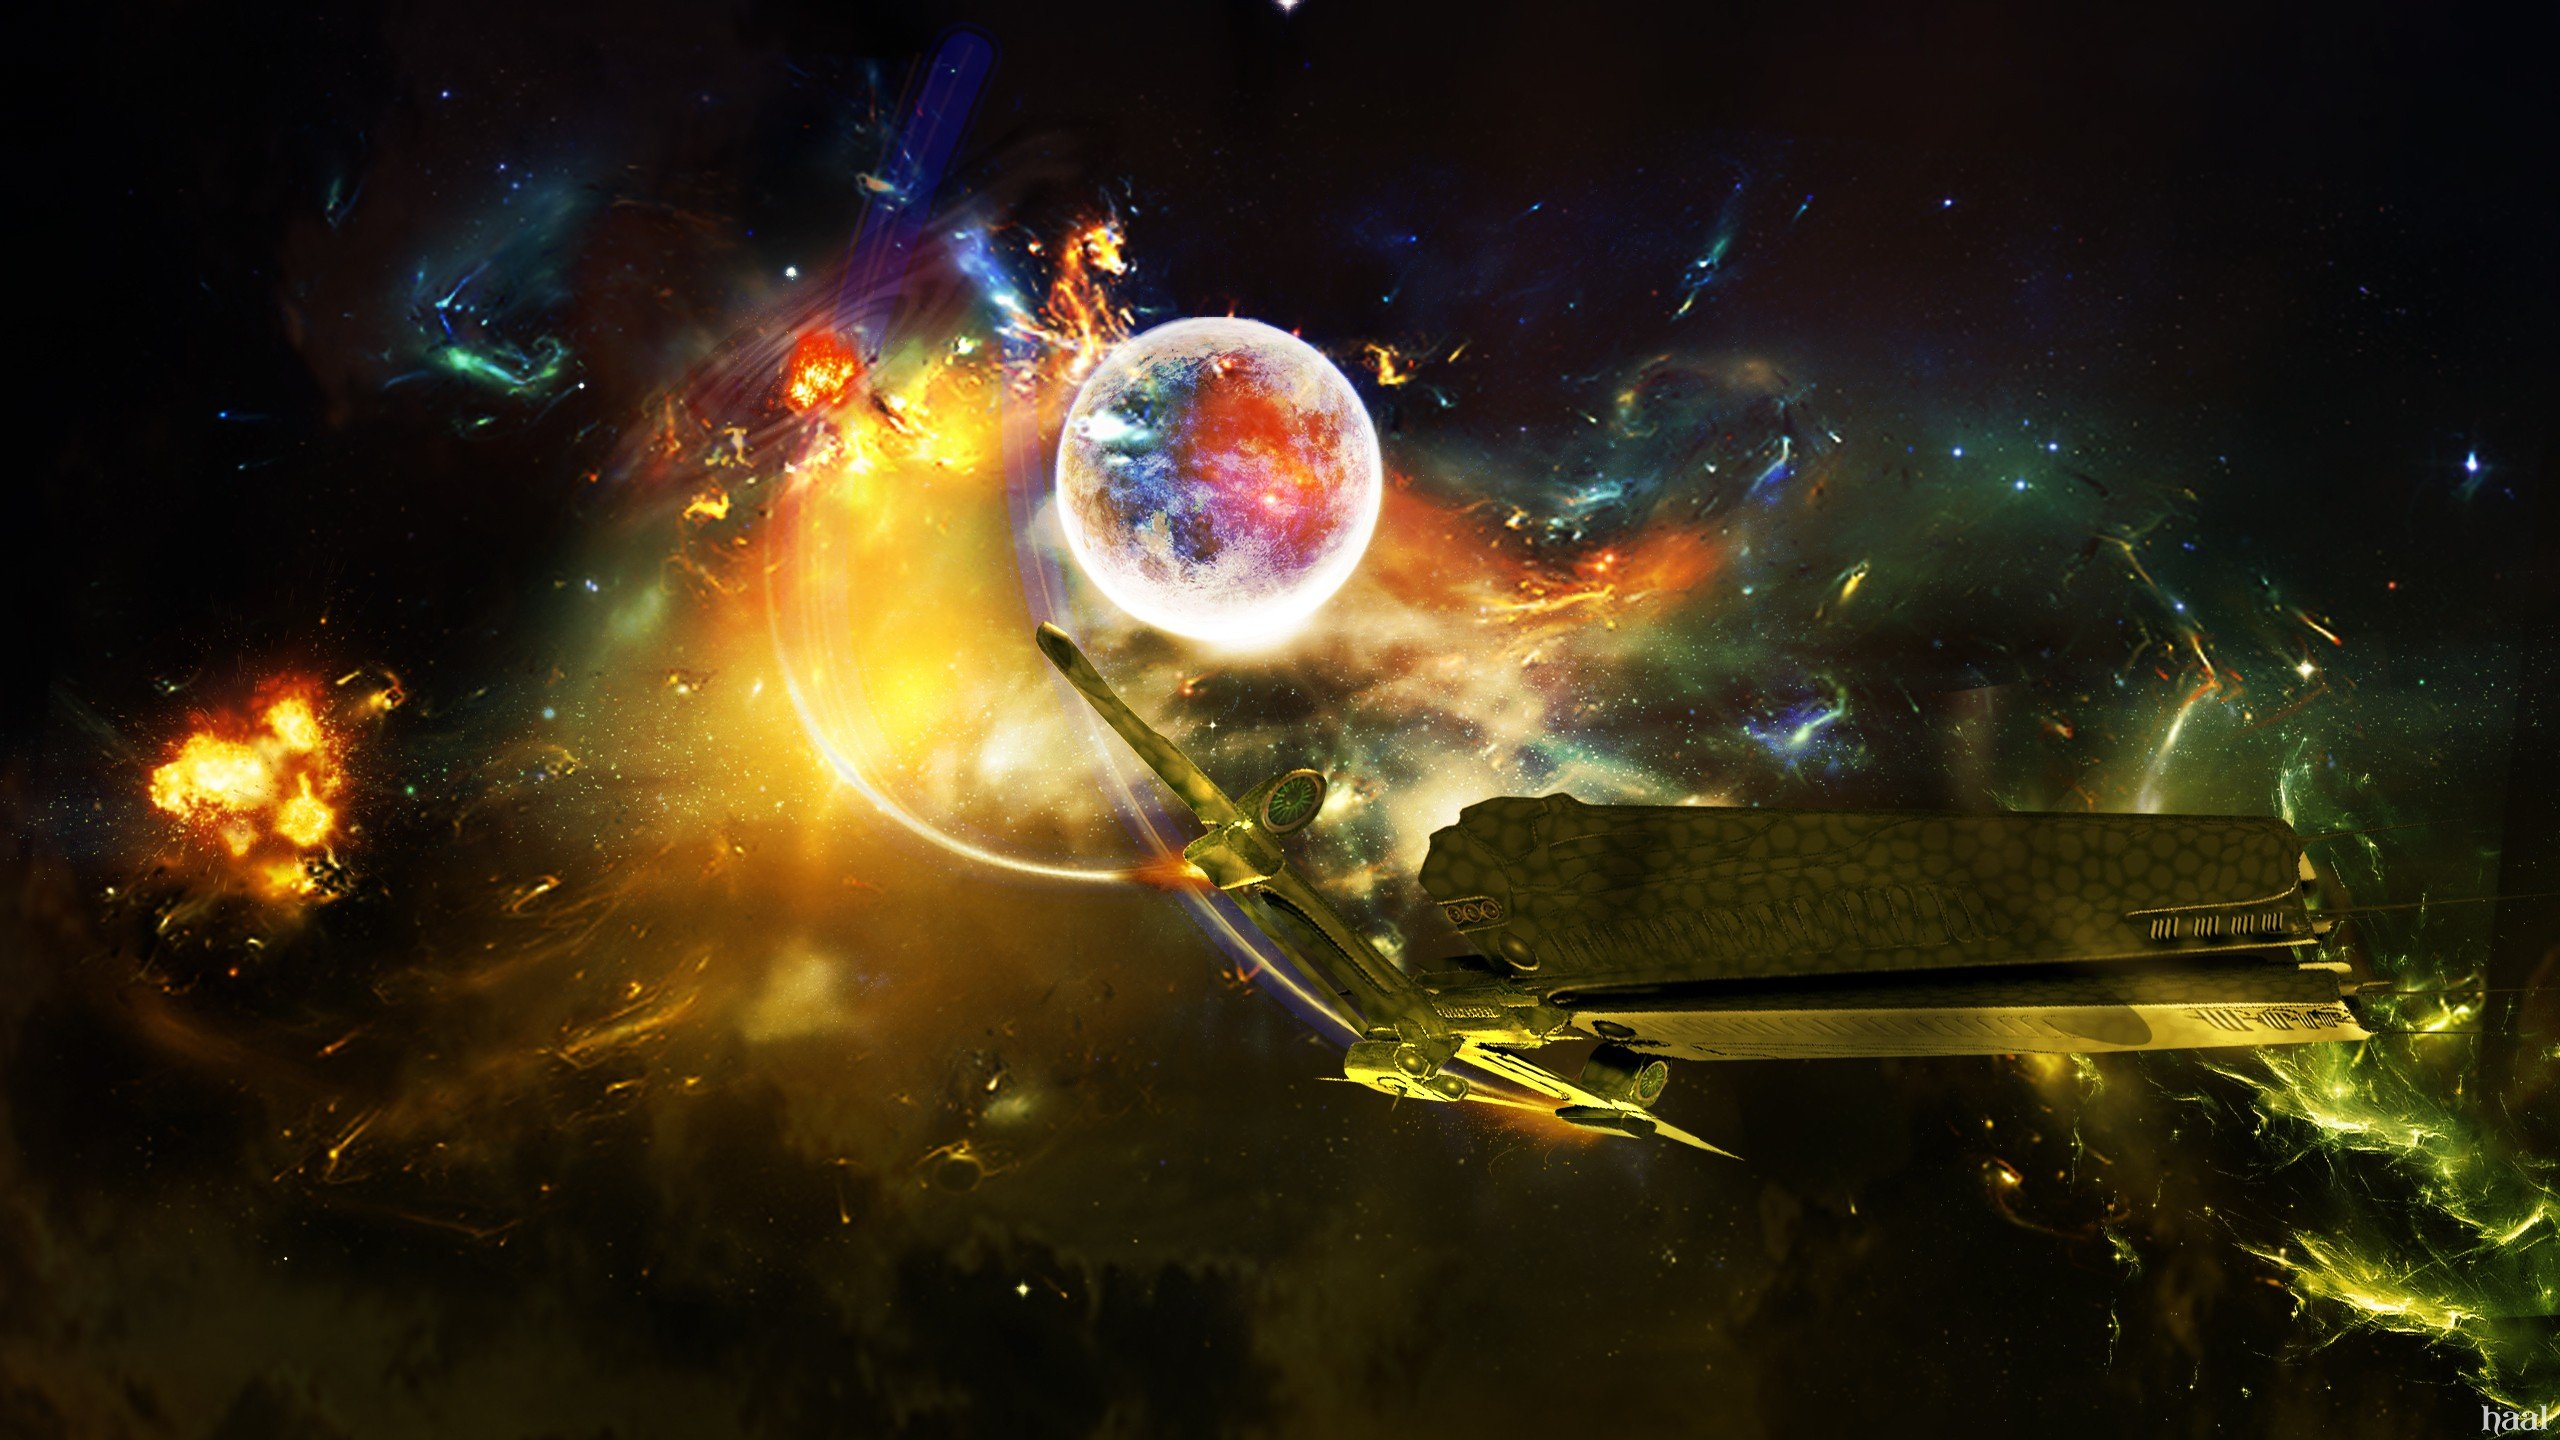 Outer Space Science Fiction Photo Manipulation Wallpaper